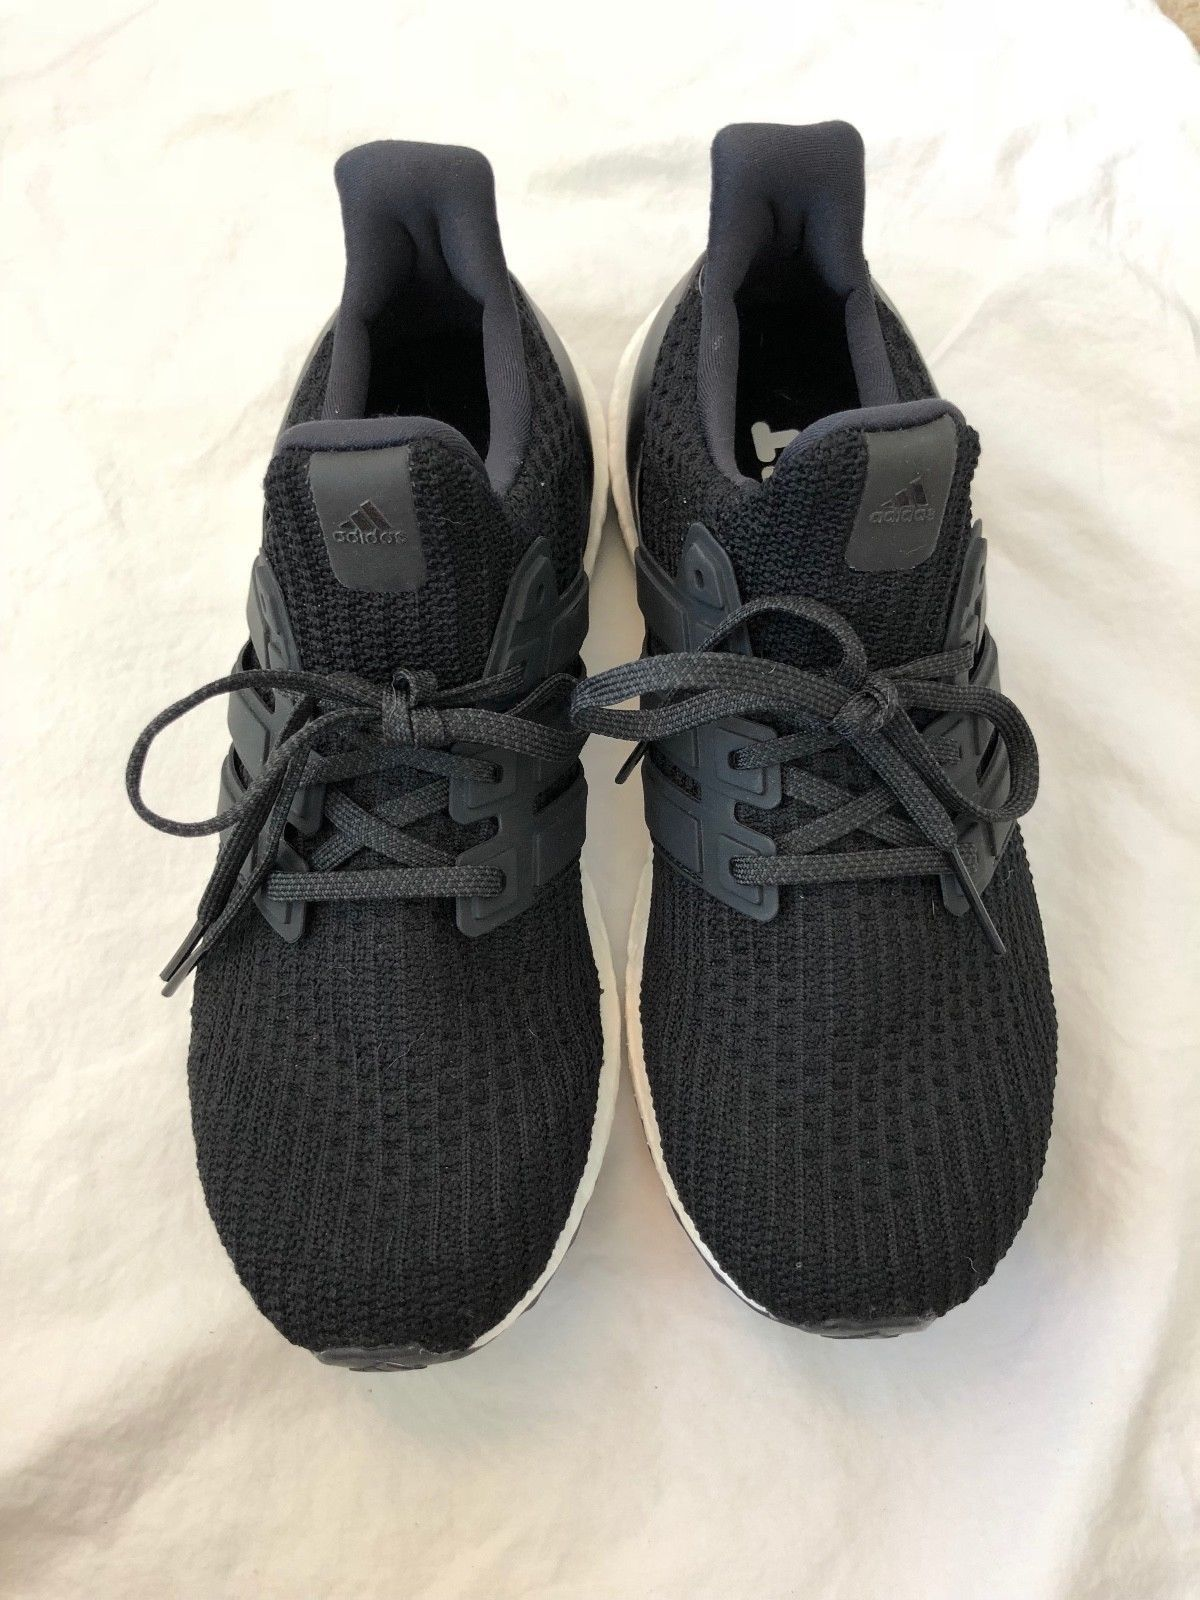 7e1141afa NEVER BEEN WORN Women s Adidas Ultra Boost Black Size 9 - BB6149 ...